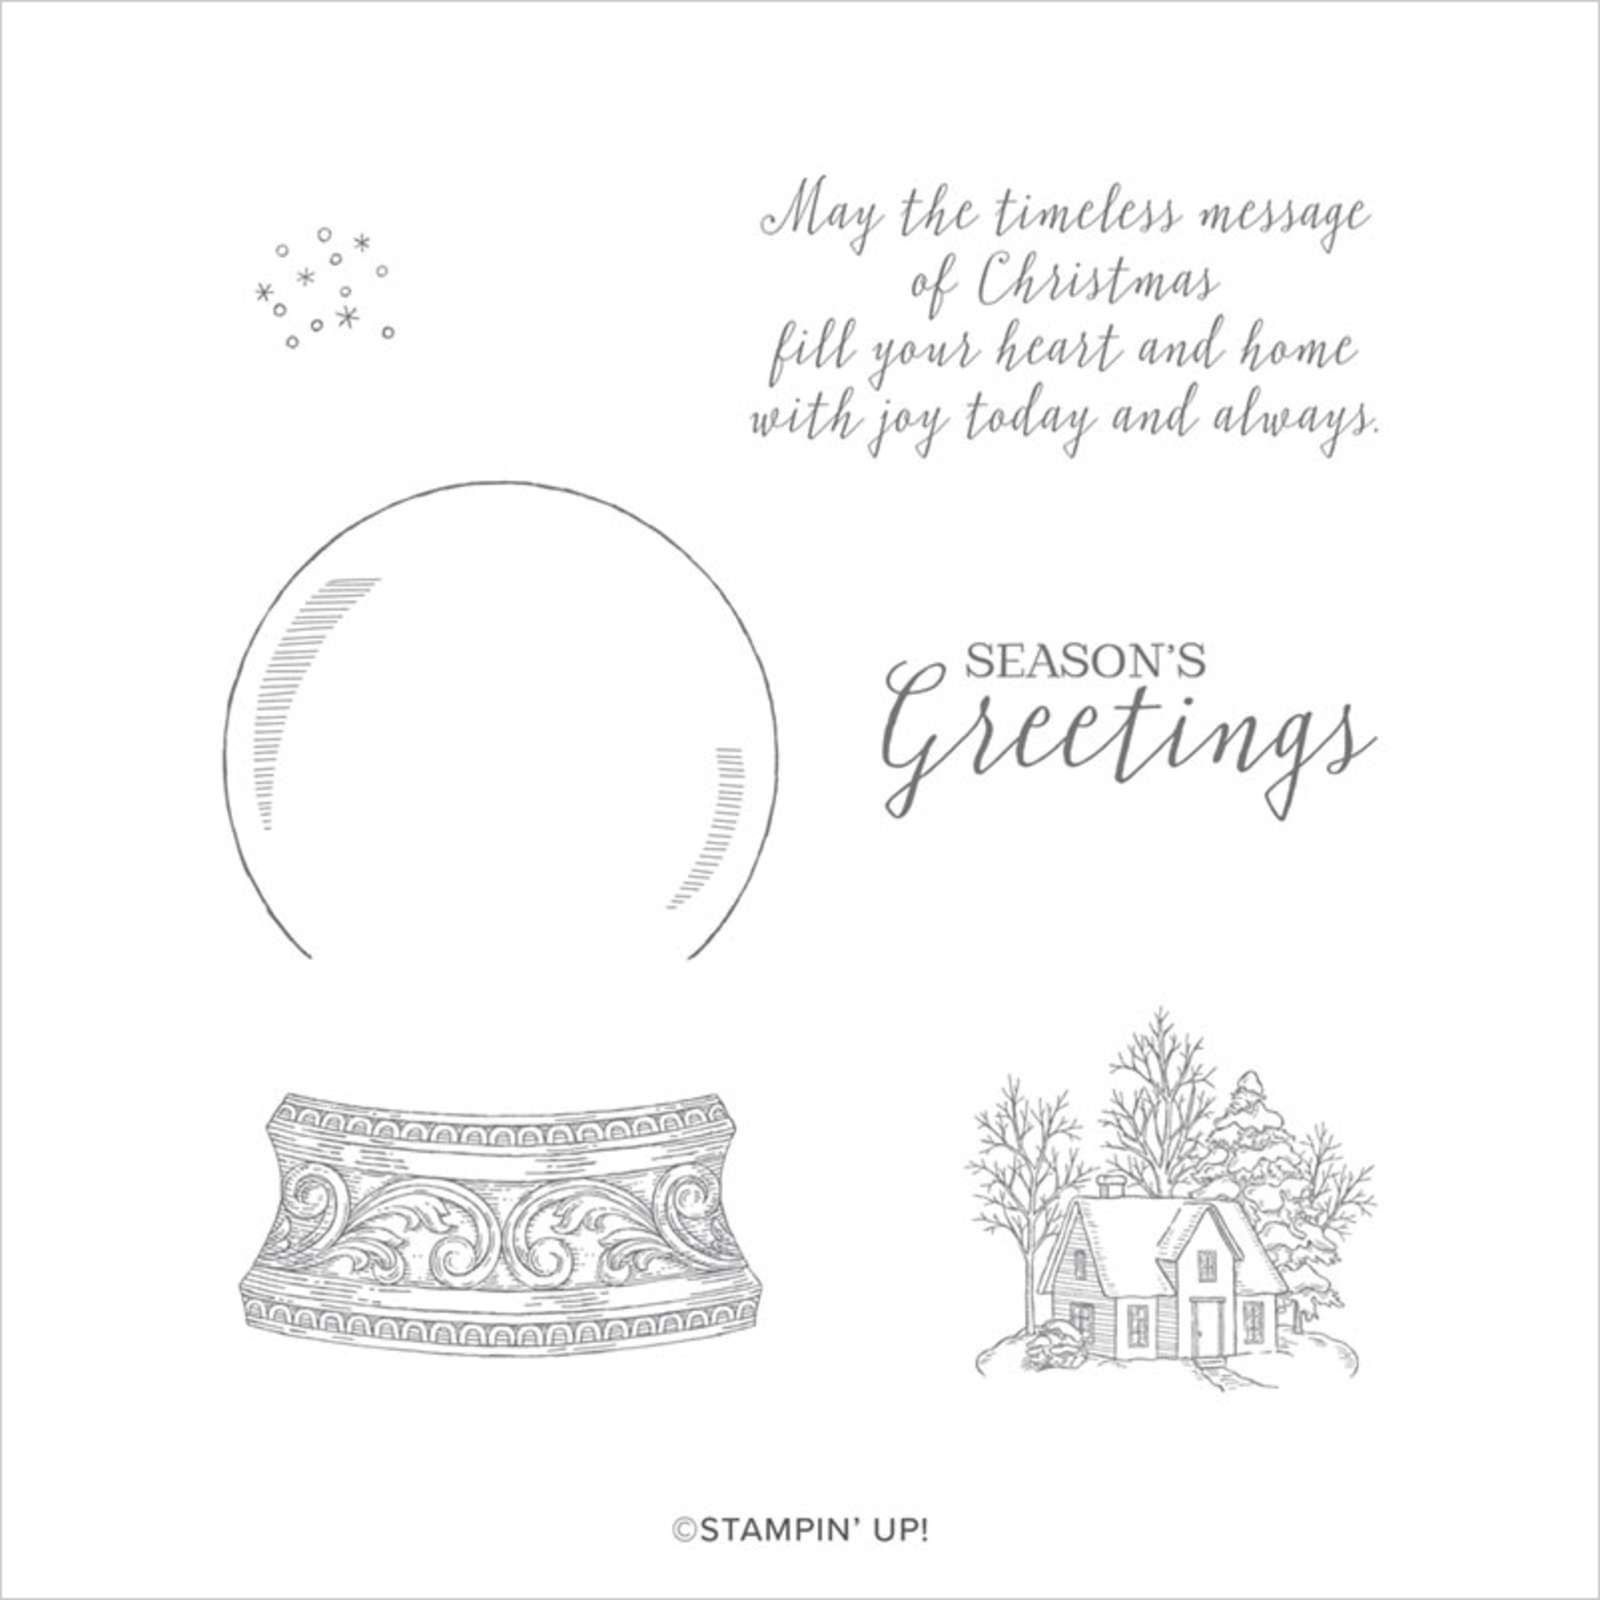 150503 Still scenes boules a secouer stampin up noel